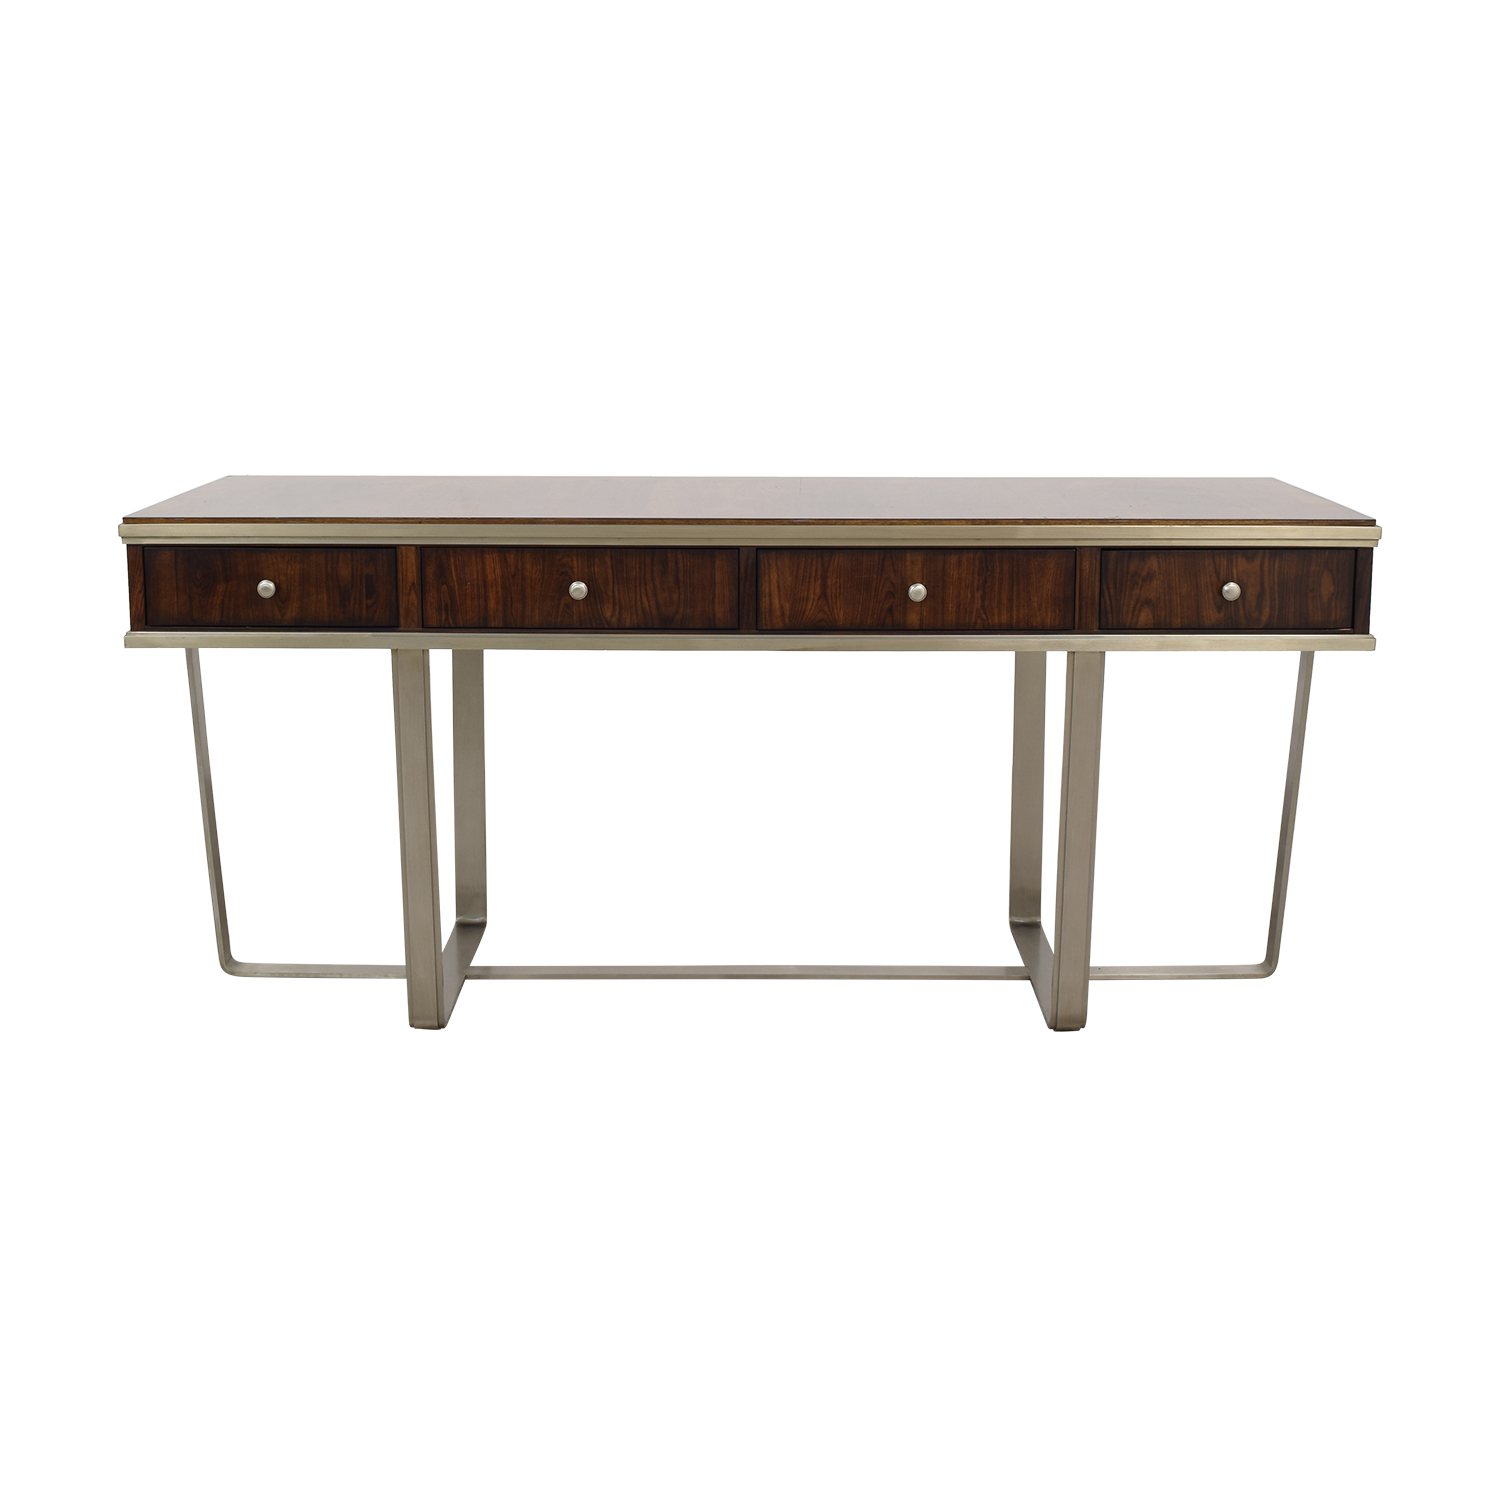 Century Furniture Century Furniture Thomas O'Brien Credenza Tables